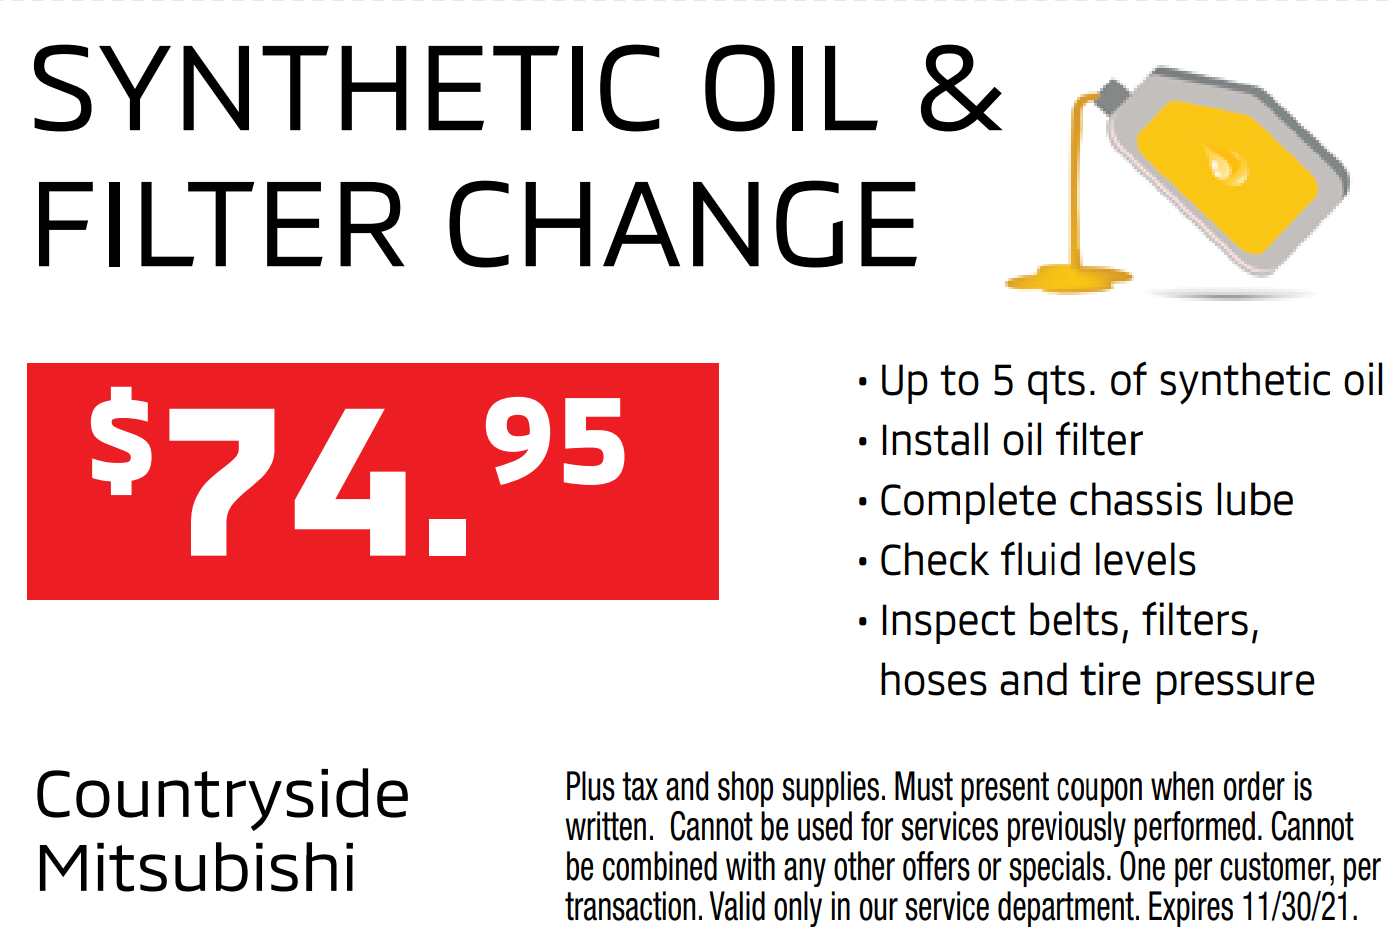 Synthetic Oil & Filter Change for $74.95